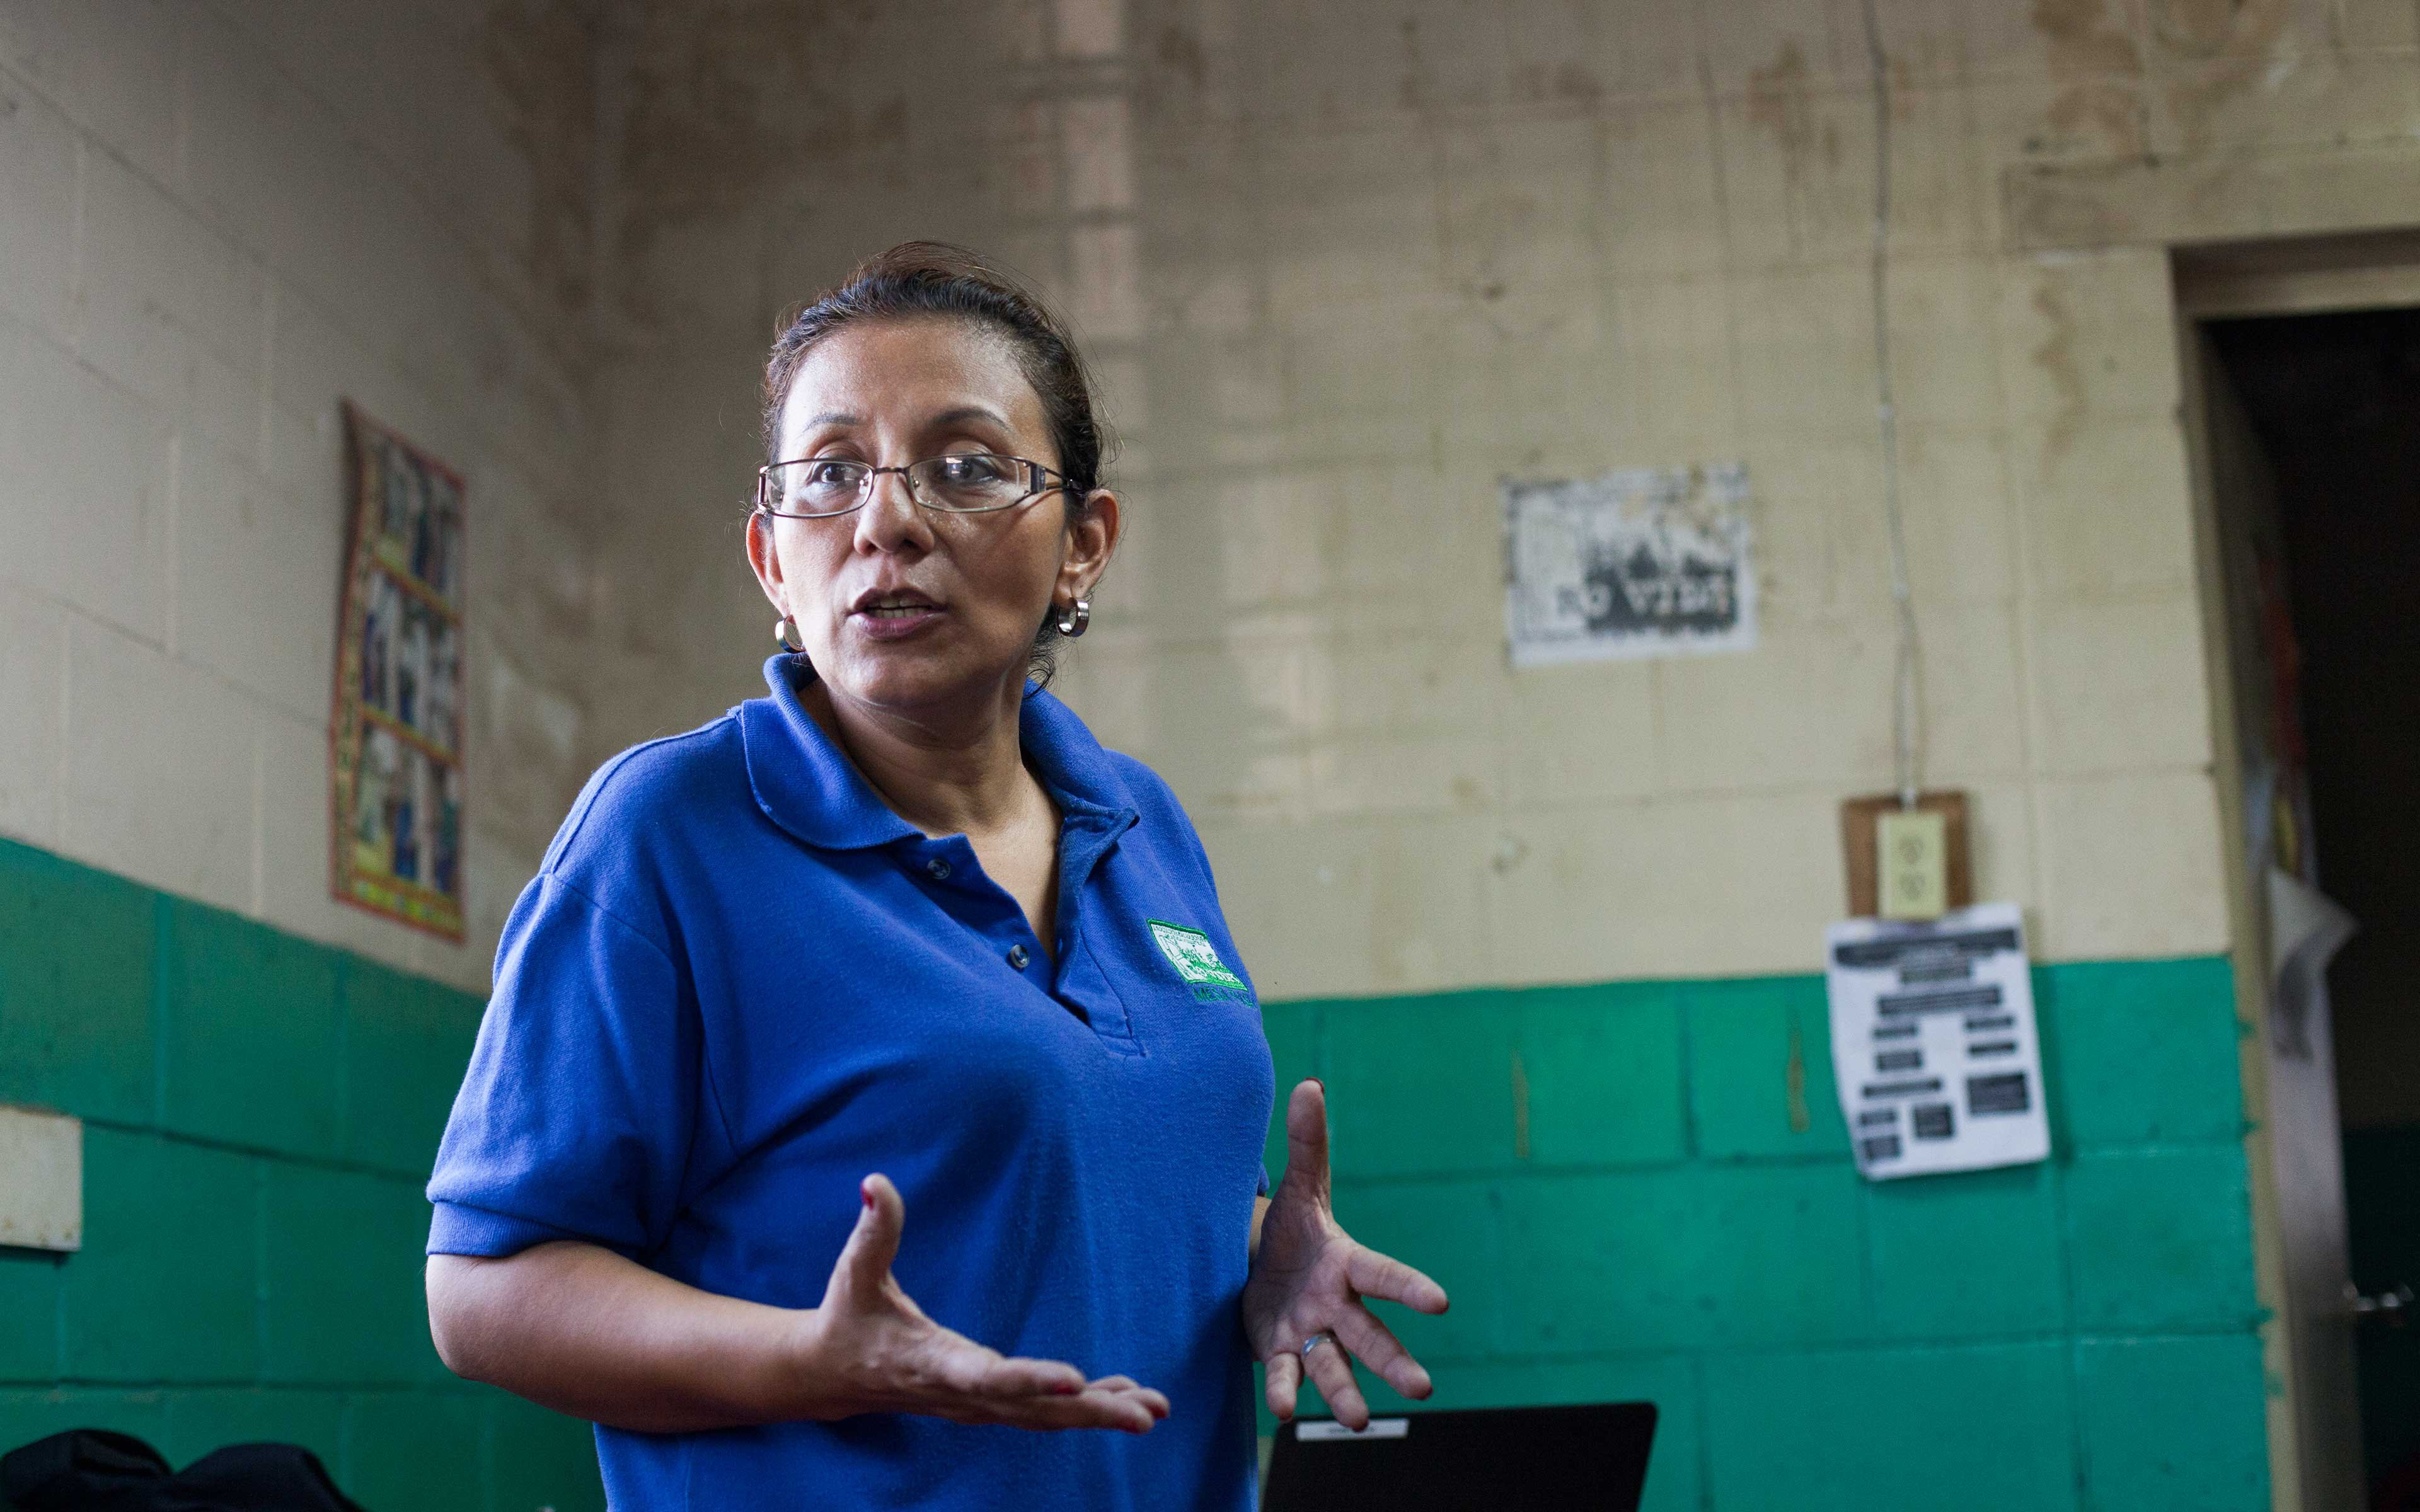 """Karen Ramírez discusses a food voucher program in a community affected by the El Niño drought. """"My vision is of communities organizing around their own well-being and electing responsible governments—and of those governments reducing disaster risks and helping communities become less vulnerable in every way,"""" she says."""